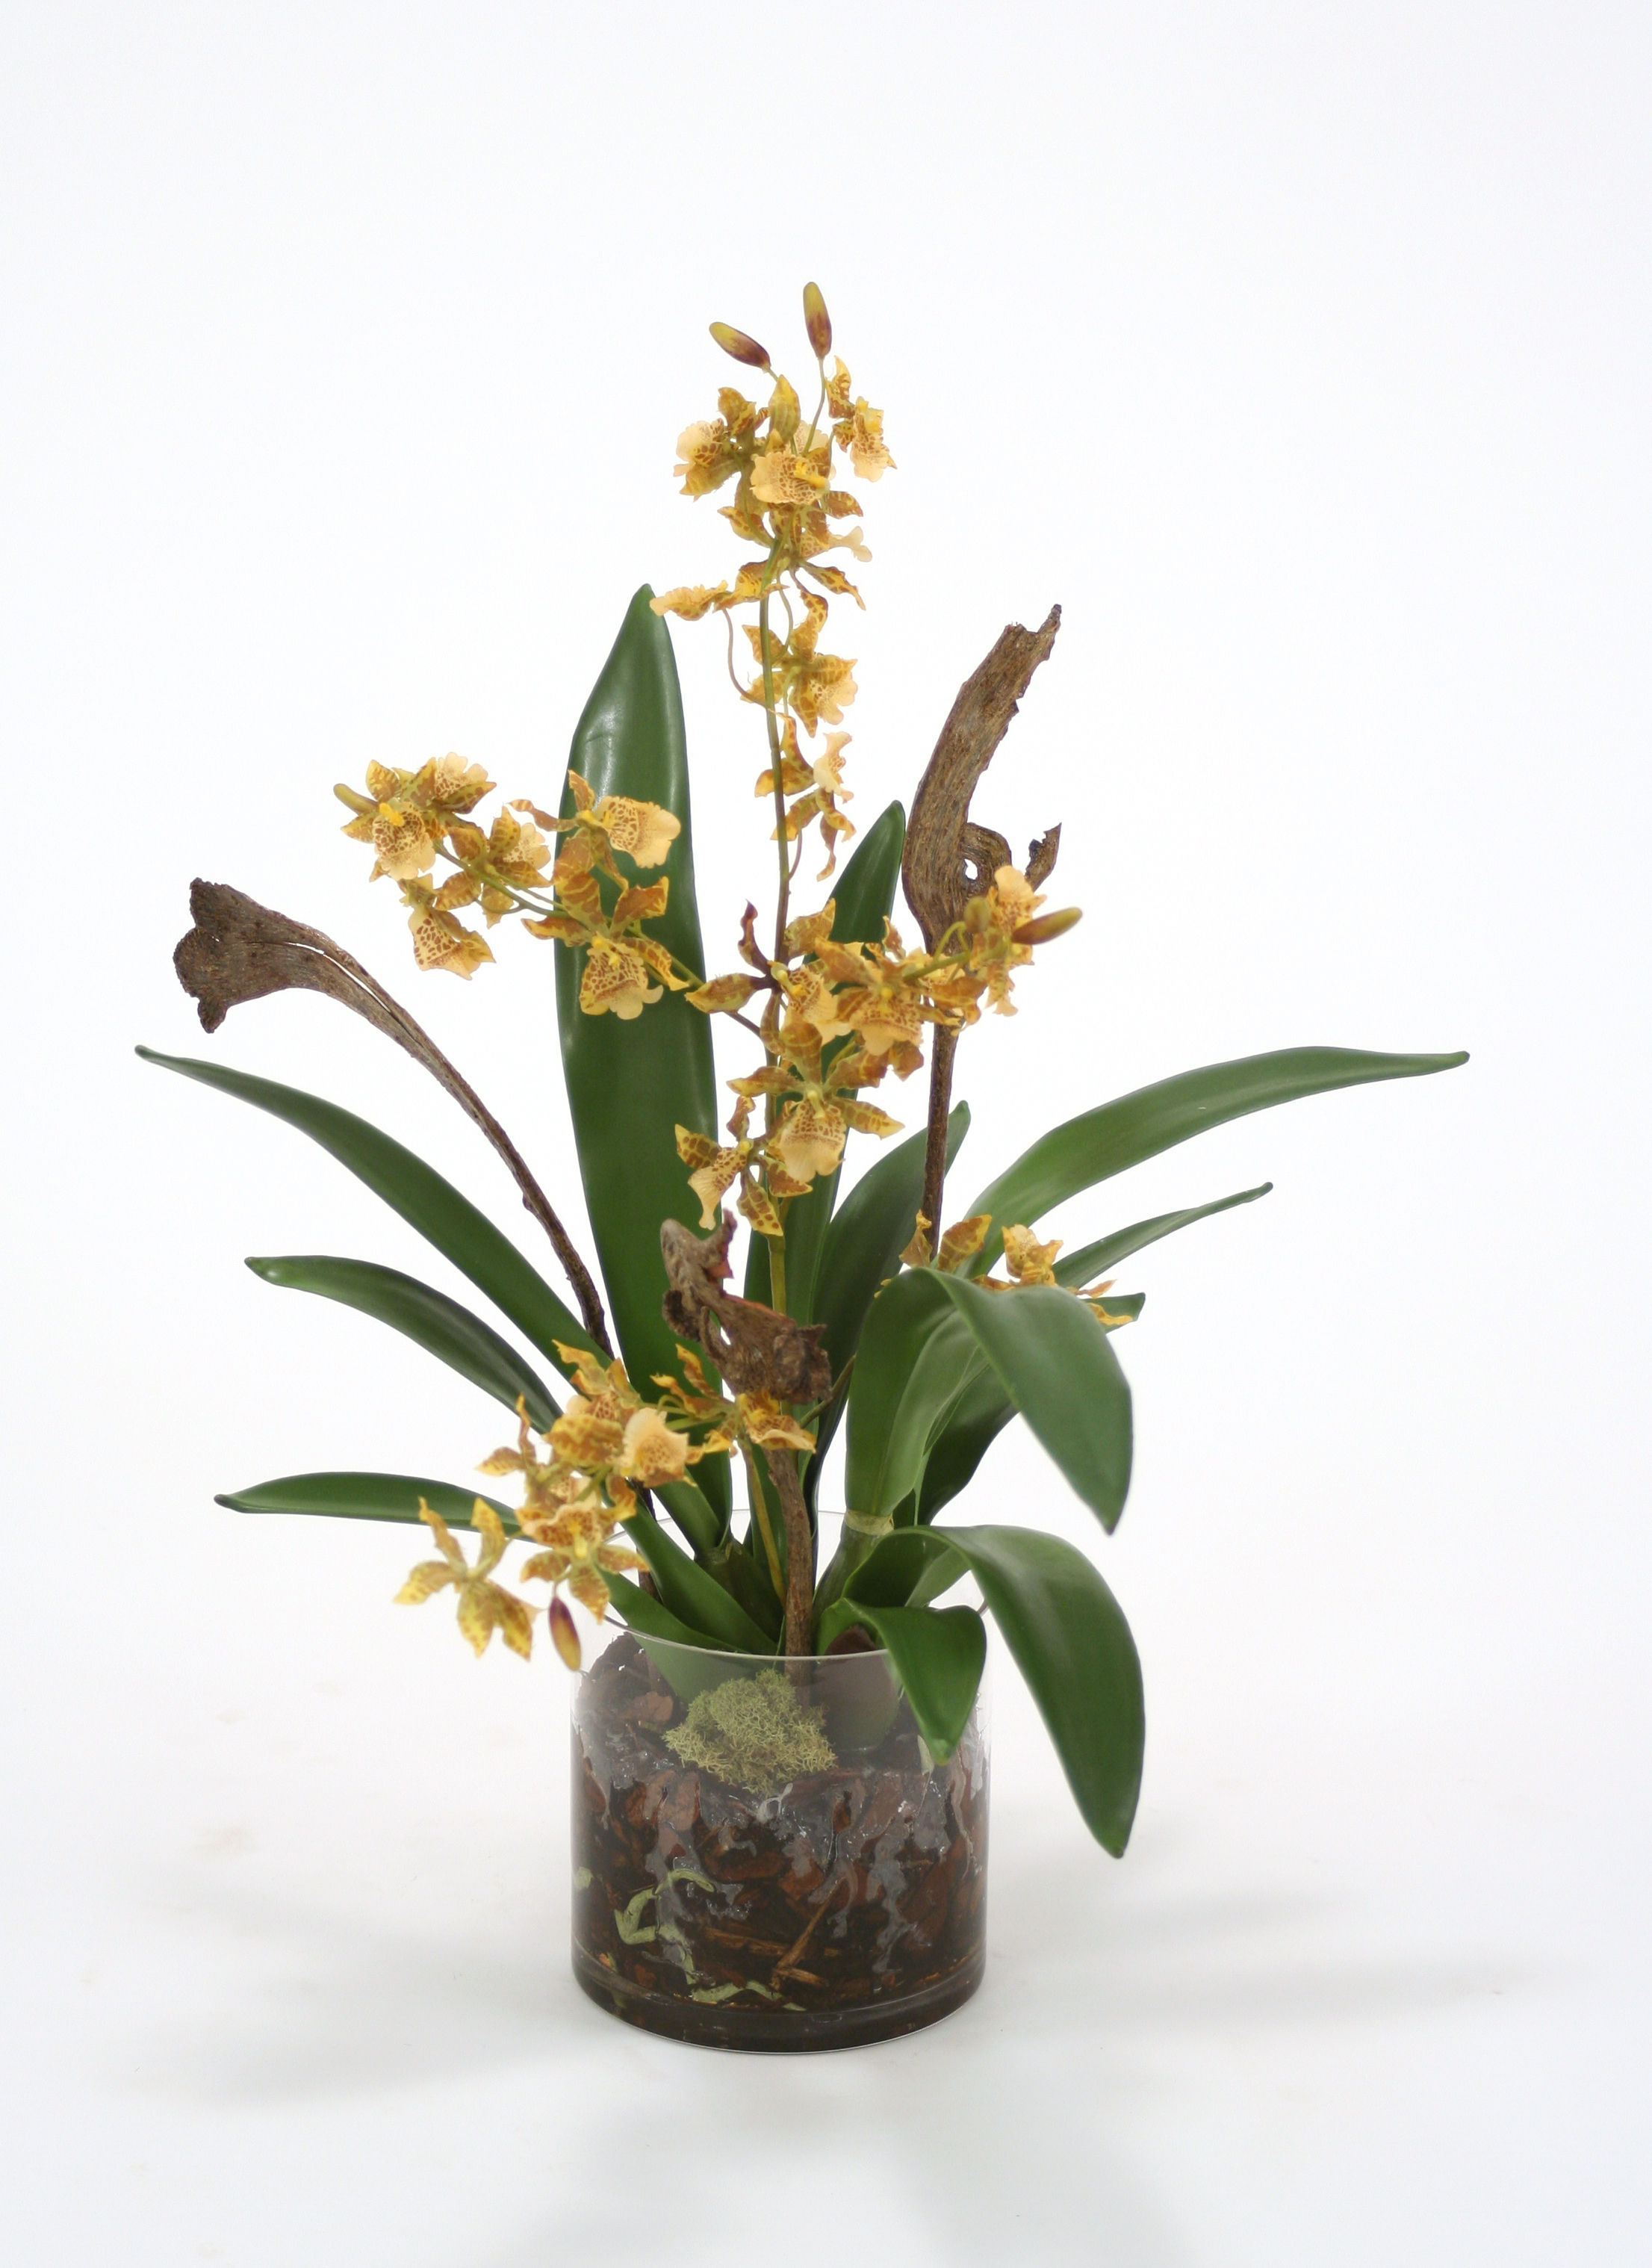 Waterlook ® Gold Green Oncidium Orchid Garden Mix in Clear Cylinder Glass Vase